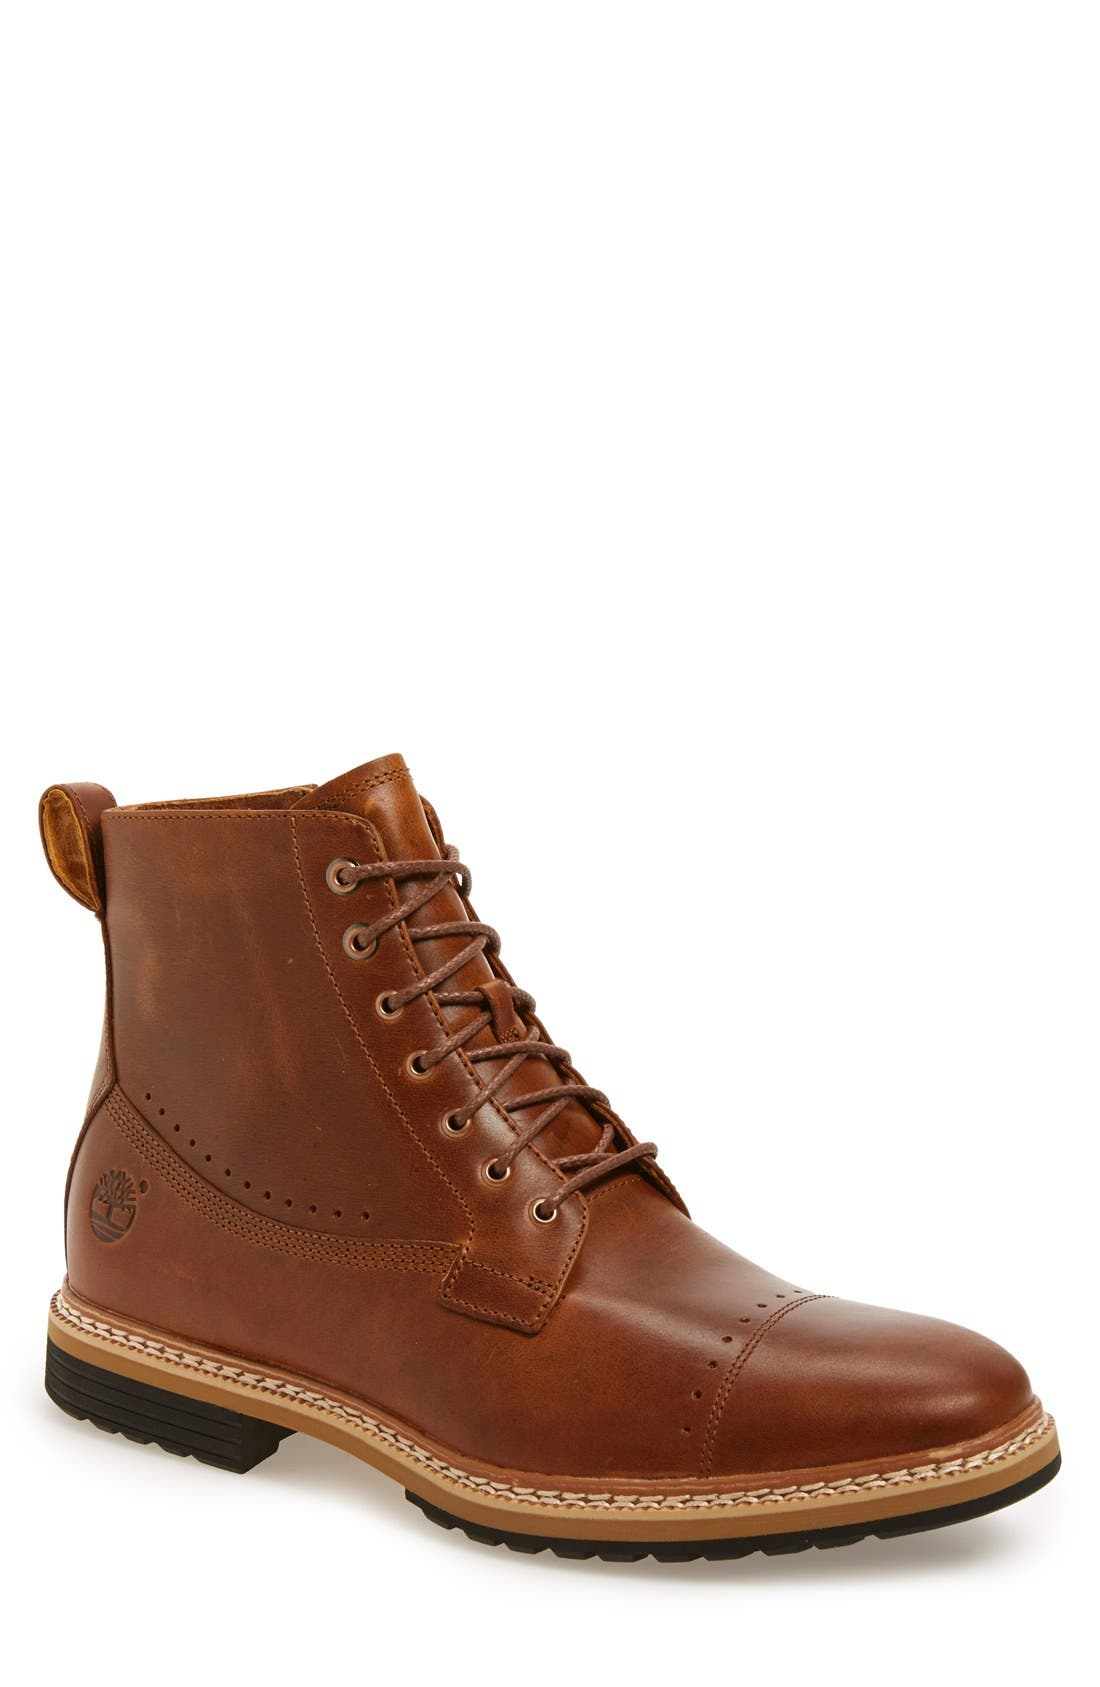 Westhaven 6 Side Zip Boot,                             Main thumbnail 1, color,                             LIGHT BROWN LEATHER